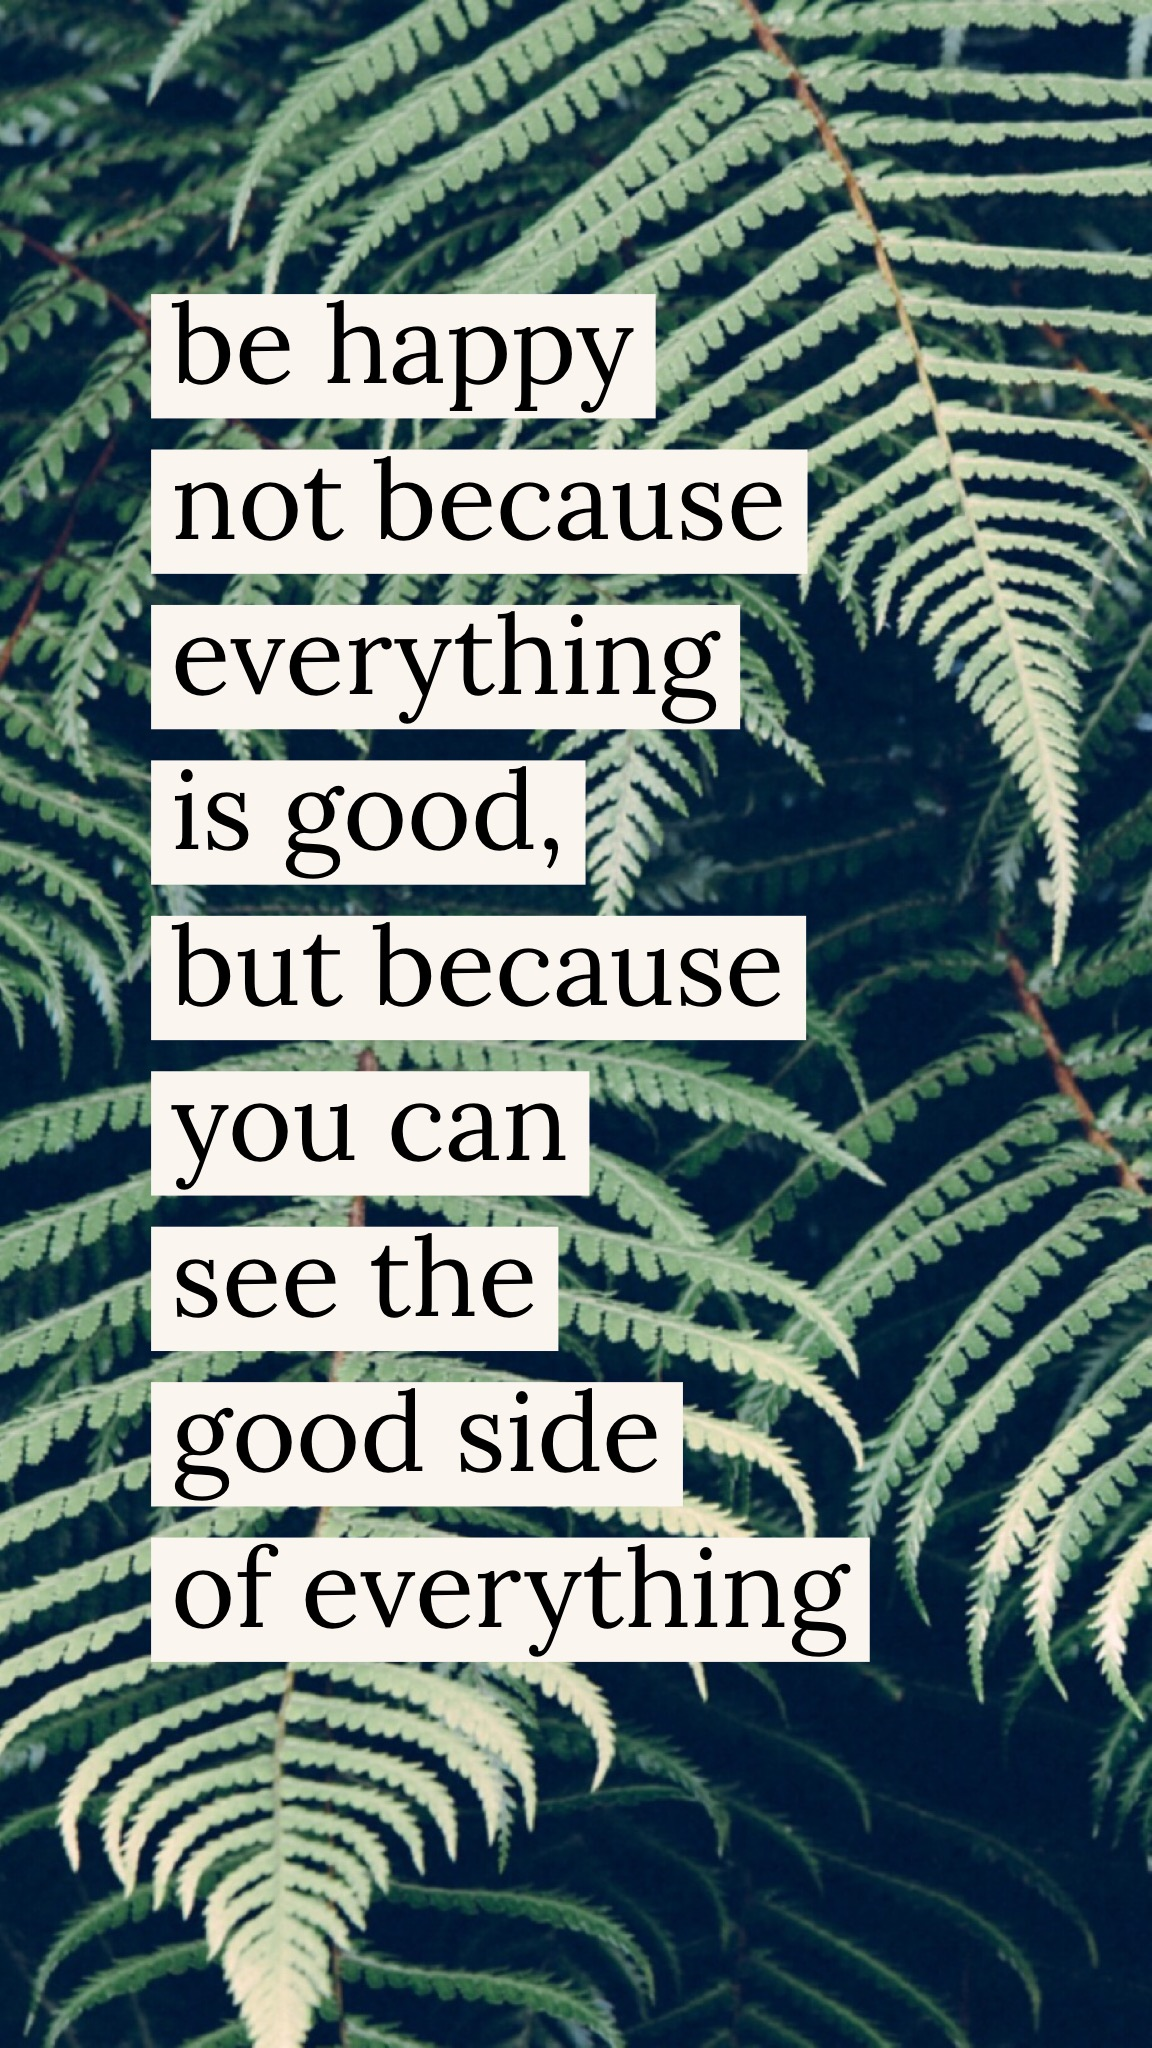 Image of: Happy Inspiring Quotes Katies Bliss 10 Inspiring Quotes You Should Bookmark Now Katies Bliss